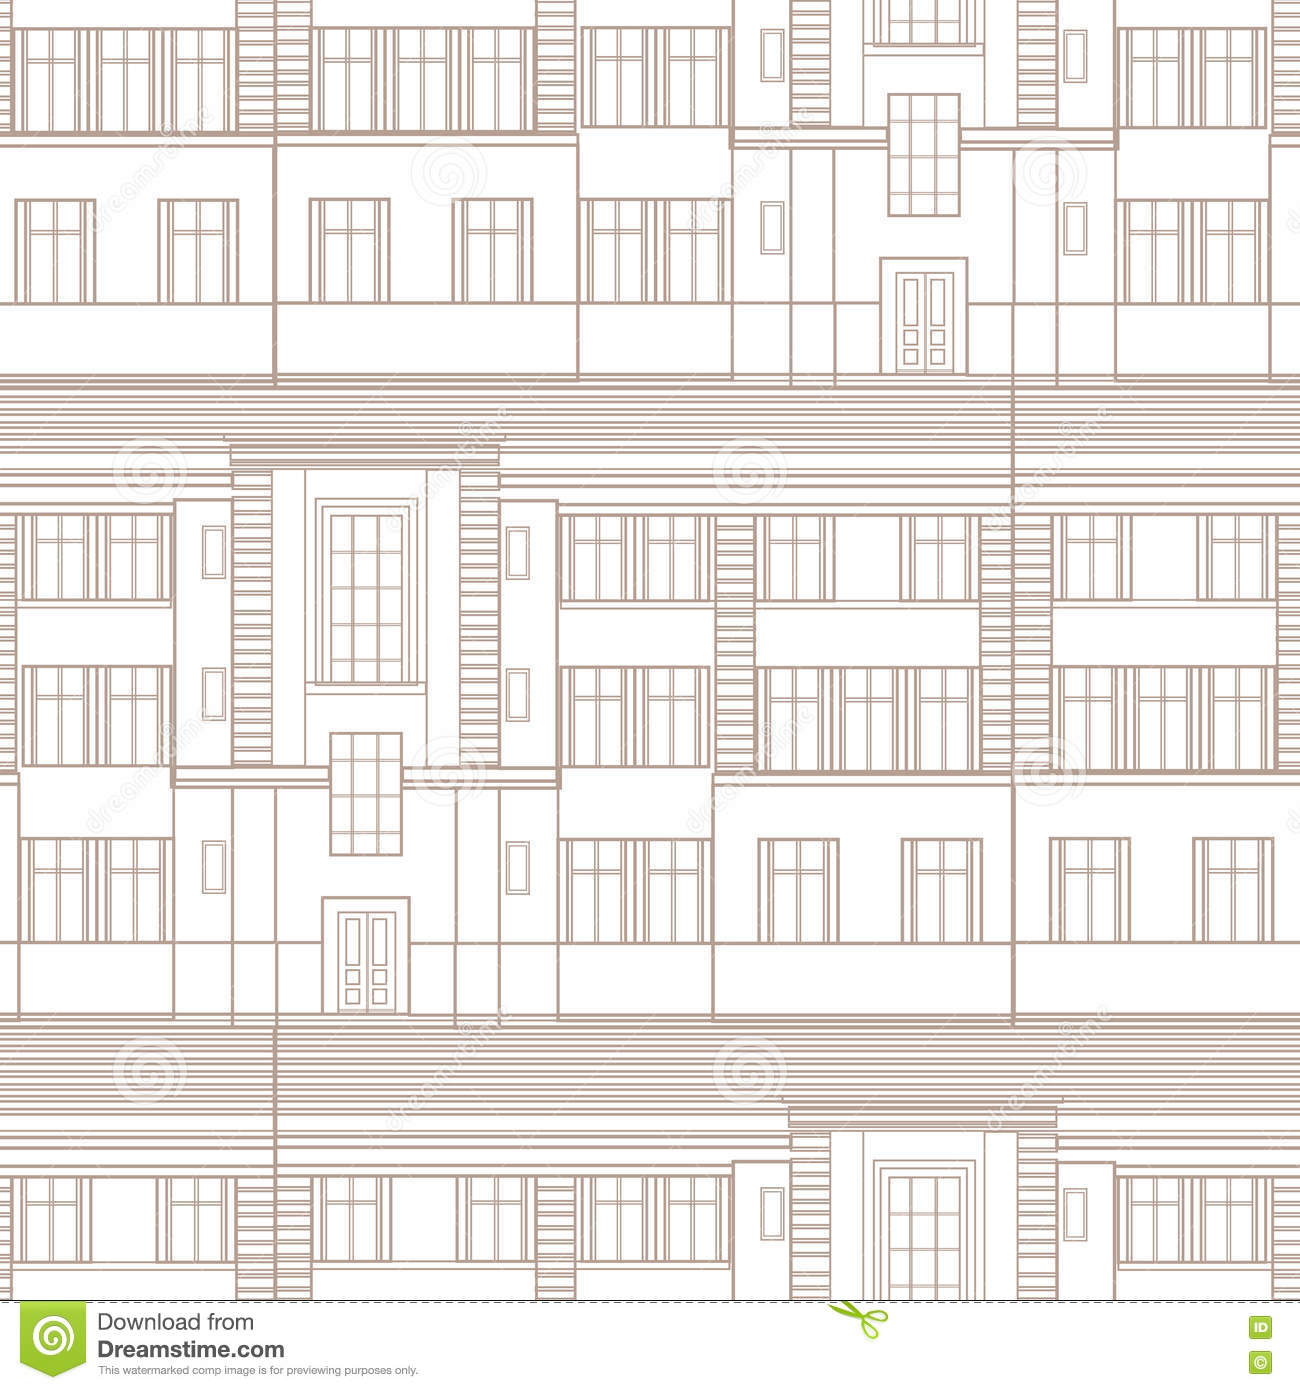 Building facade seamless pattern city architectural retro blueprint download building facade seamless pattern city architectural retro blueprint stock illustration illustration of company malvernweather Gallery